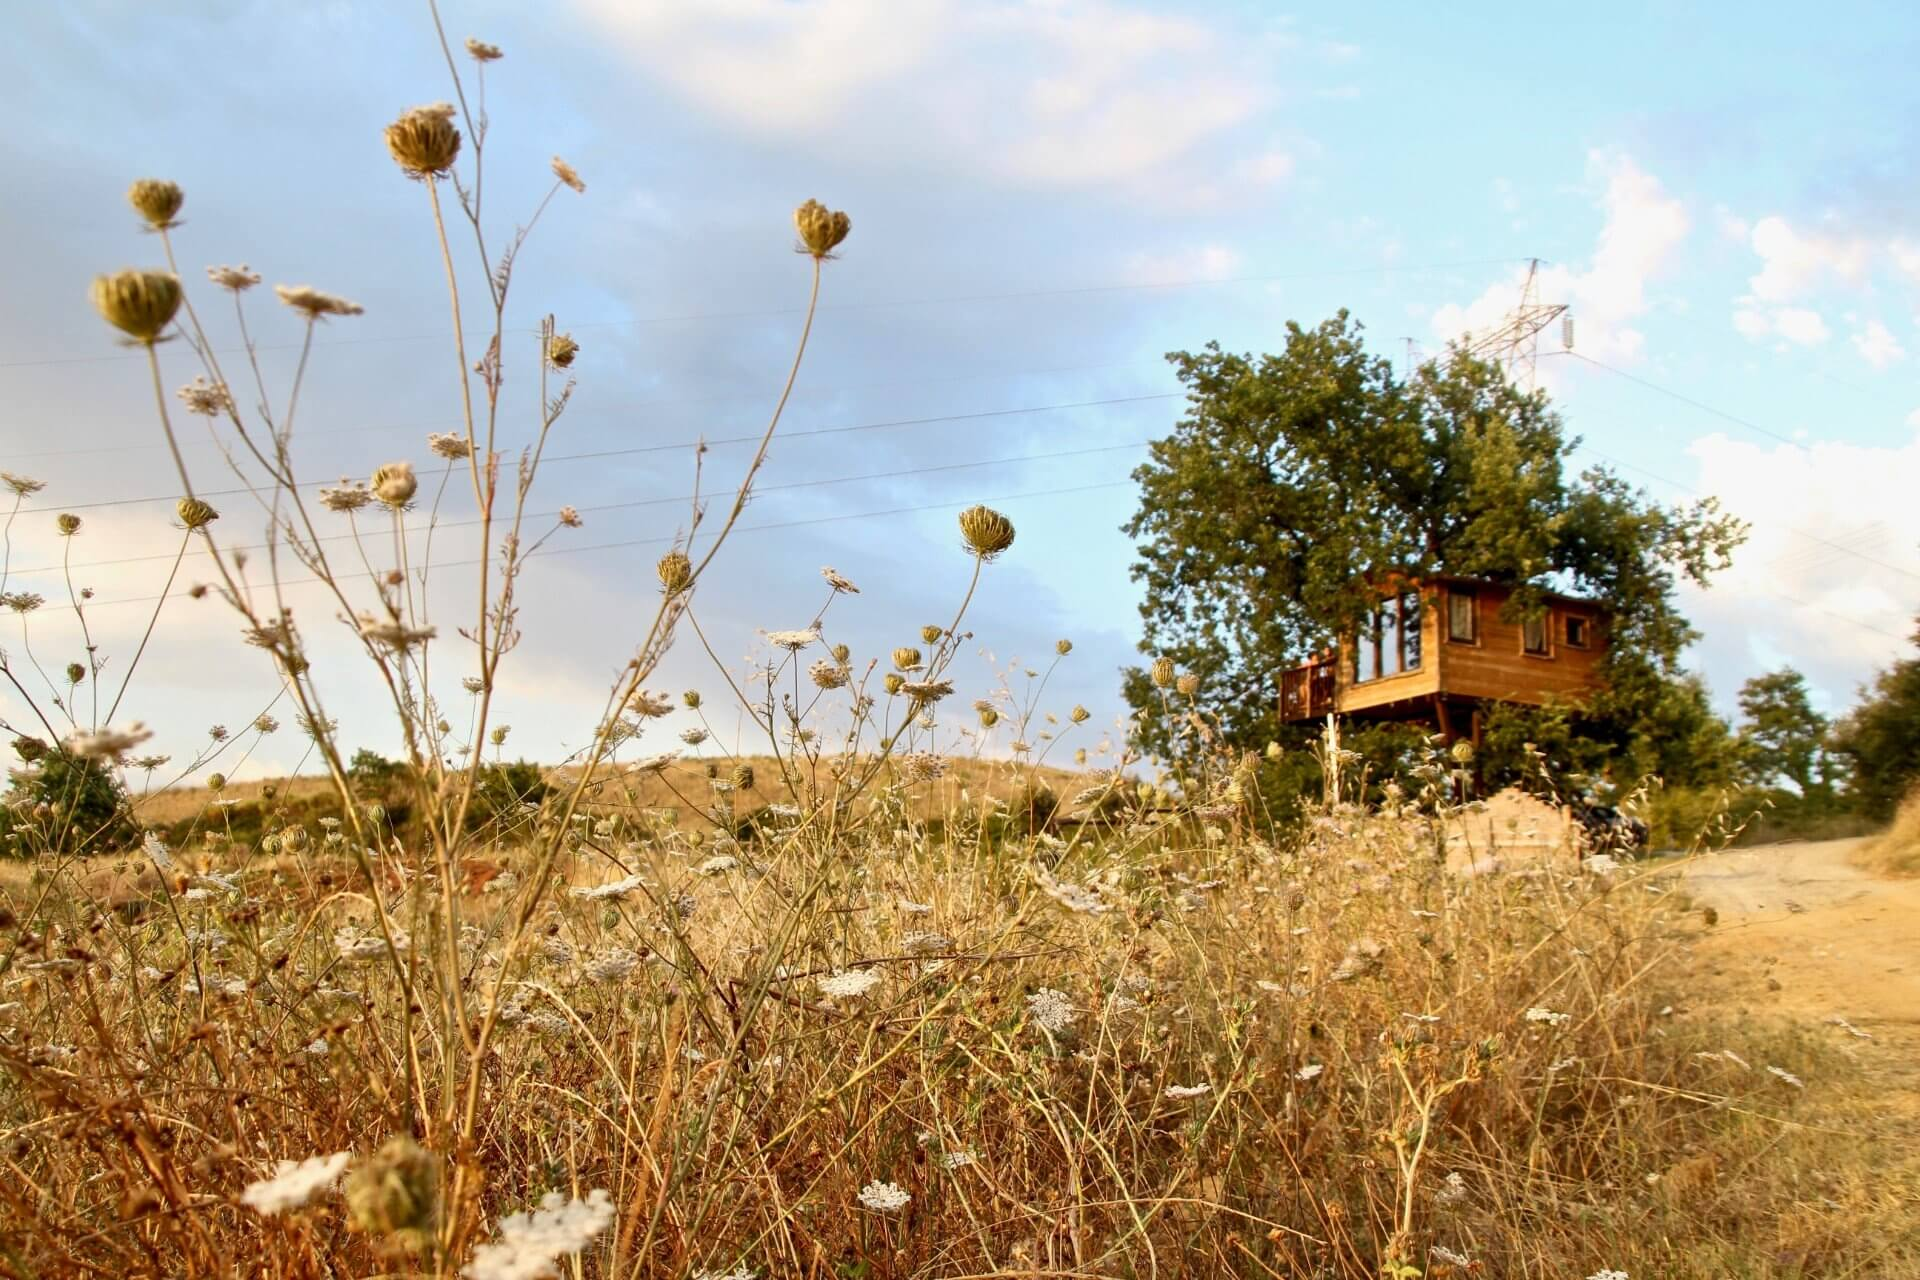 GLAMPING IL SOLE 1 PASSIONE GLAMPING